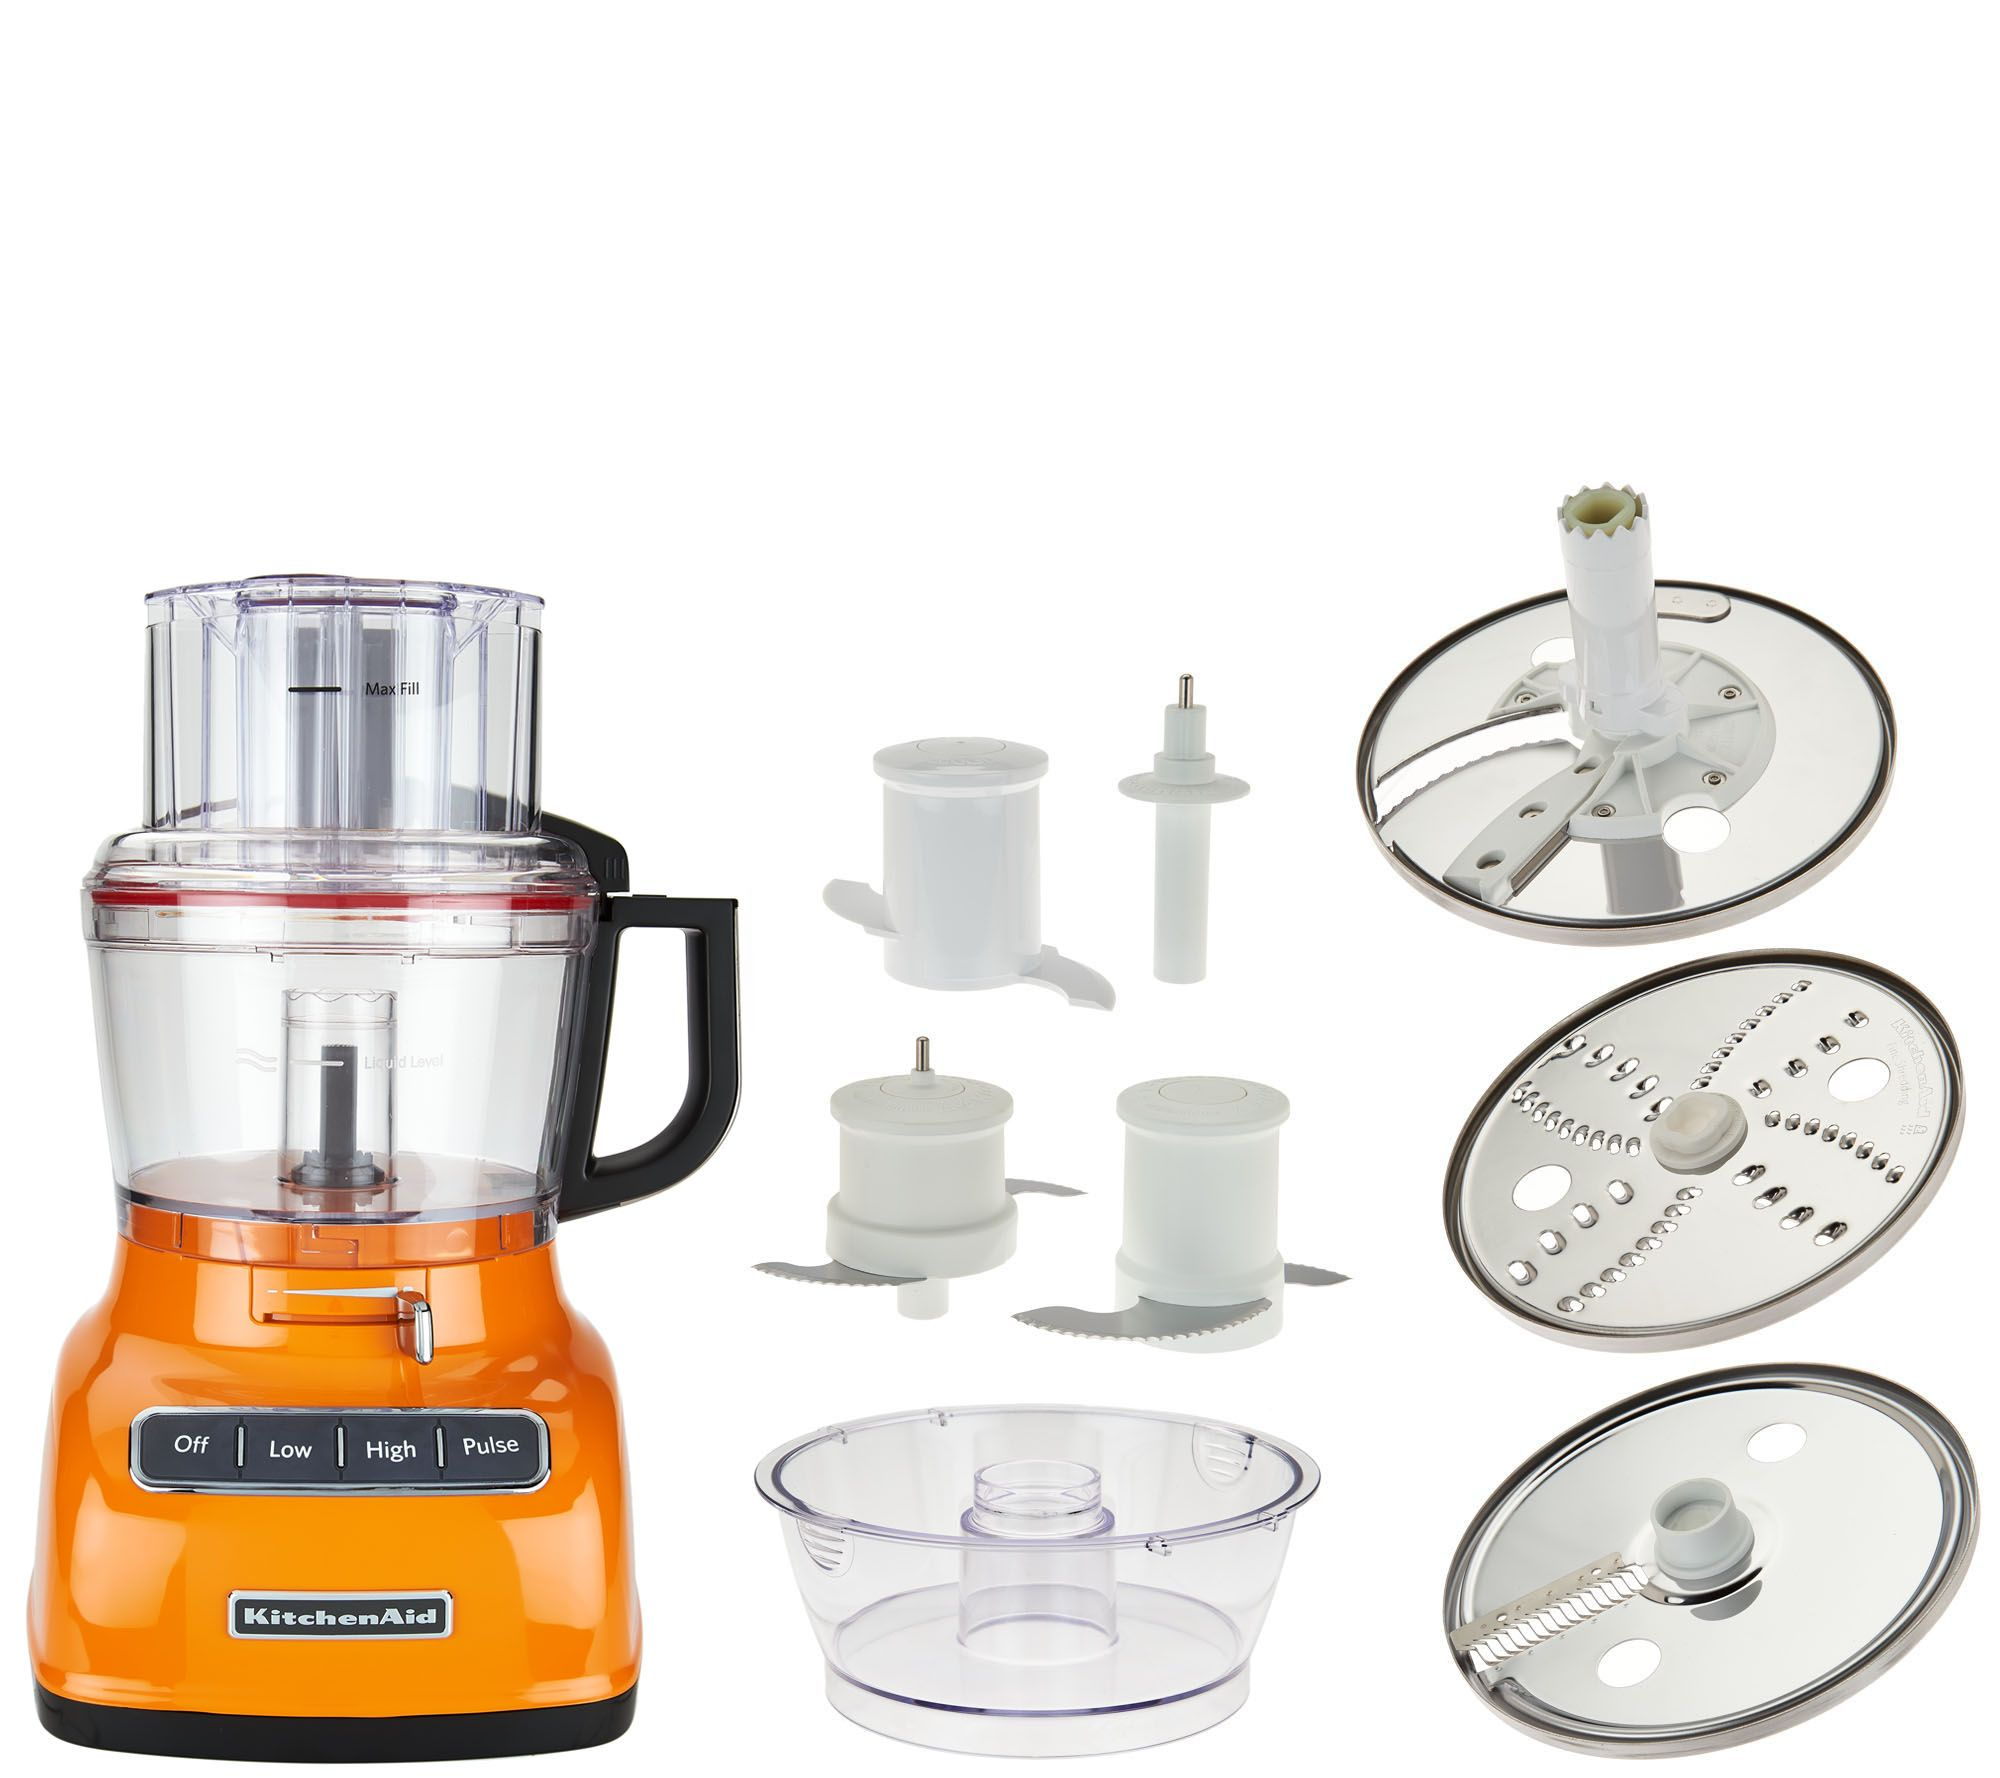 Kitchenaid 9 cup exactslice food processor w julienne disc for Kitchenaid food processor